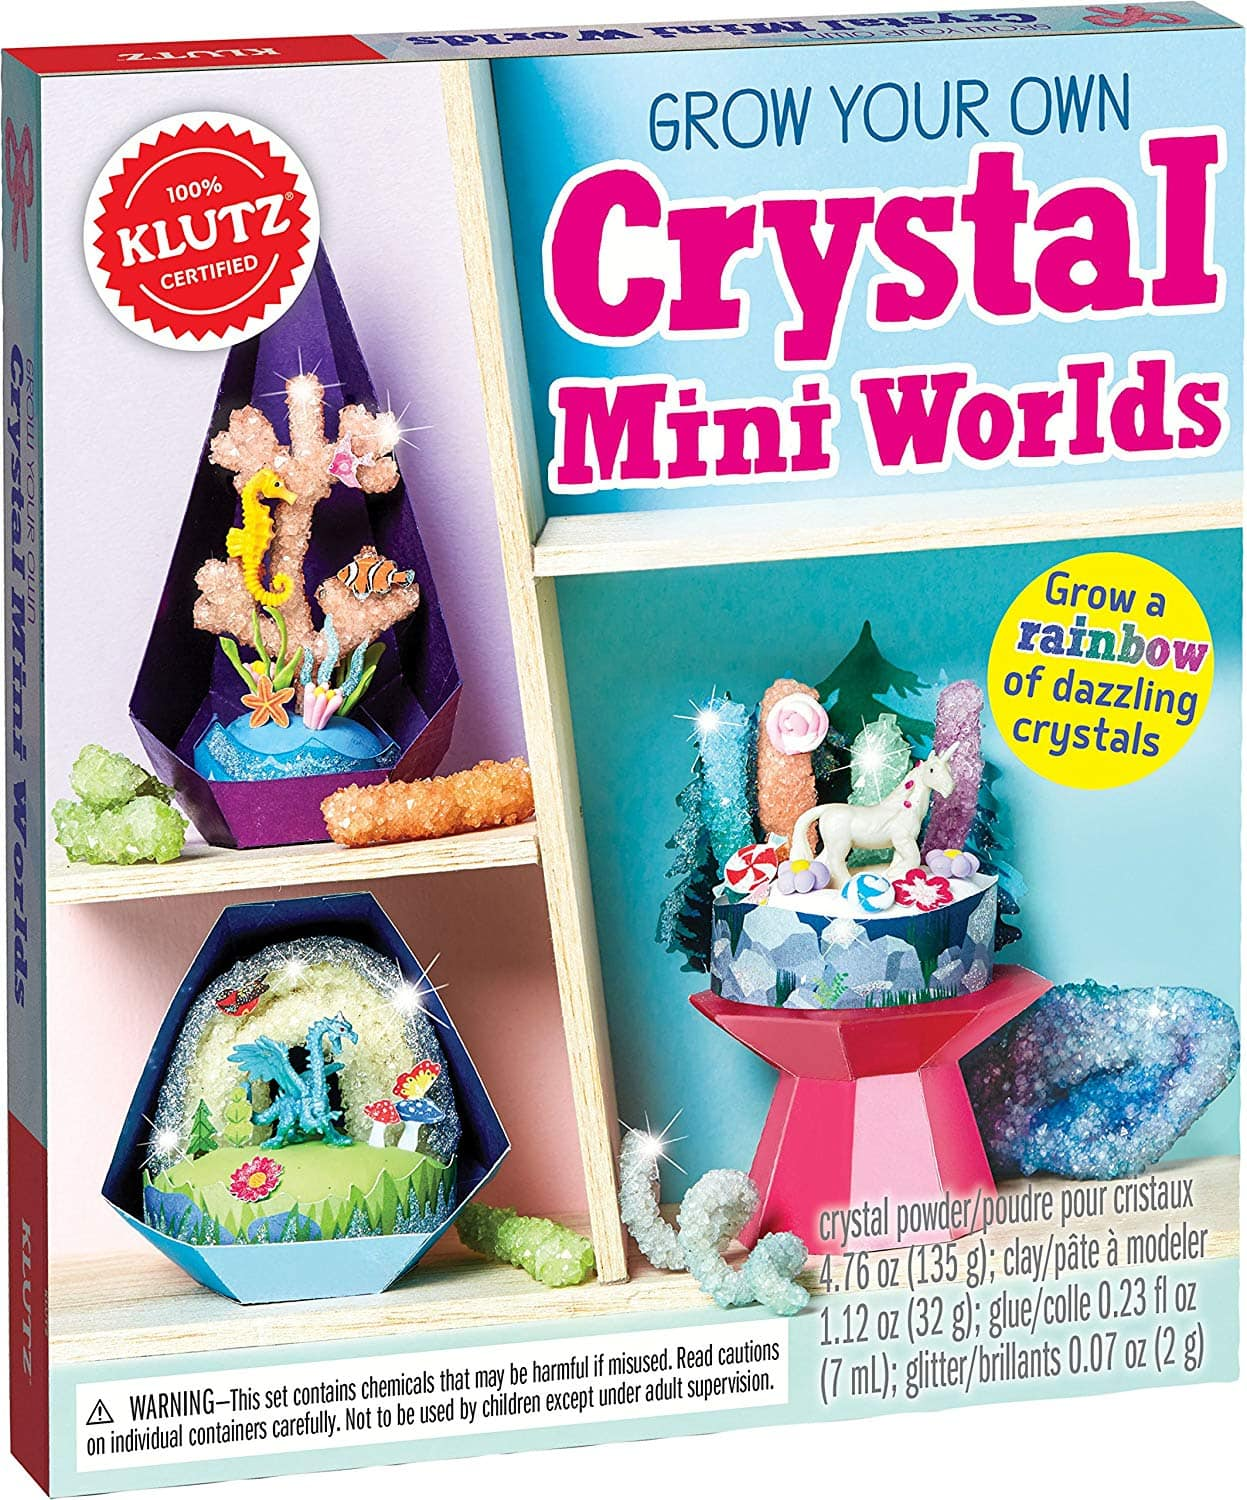 Klutz Grow Your Own Crystal Mini Worlds $7.45 - Amazon *Add On